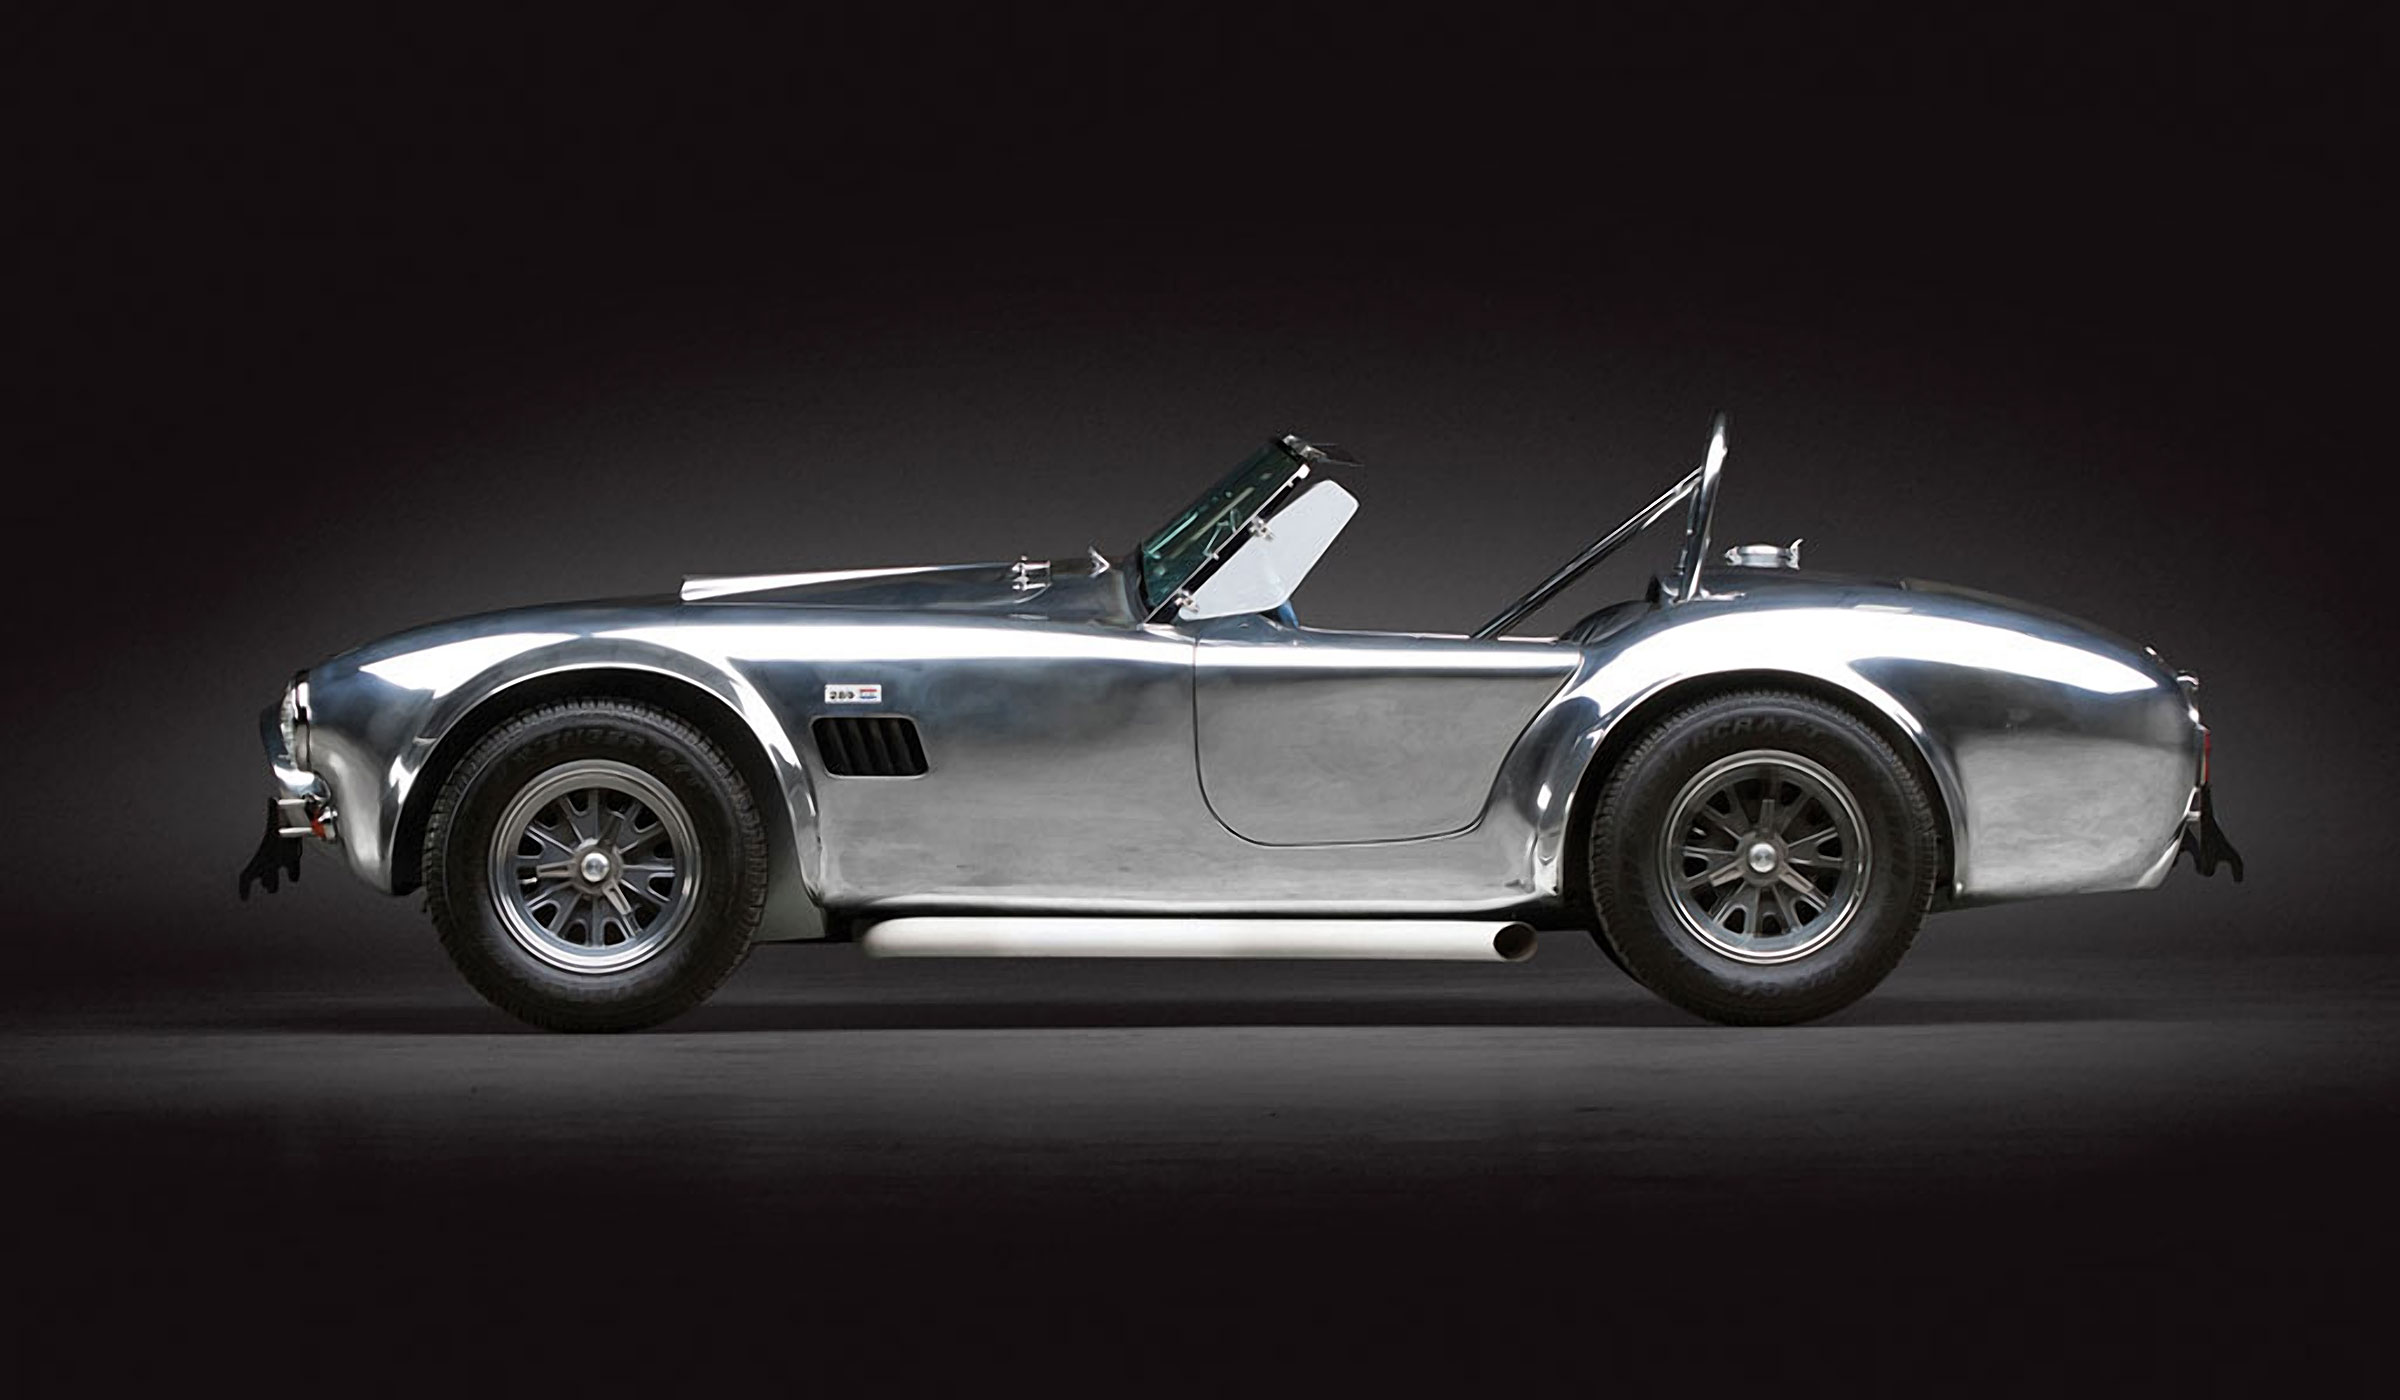 1965-Shelby-289-Cobra-Alloy-Continuation-feature2